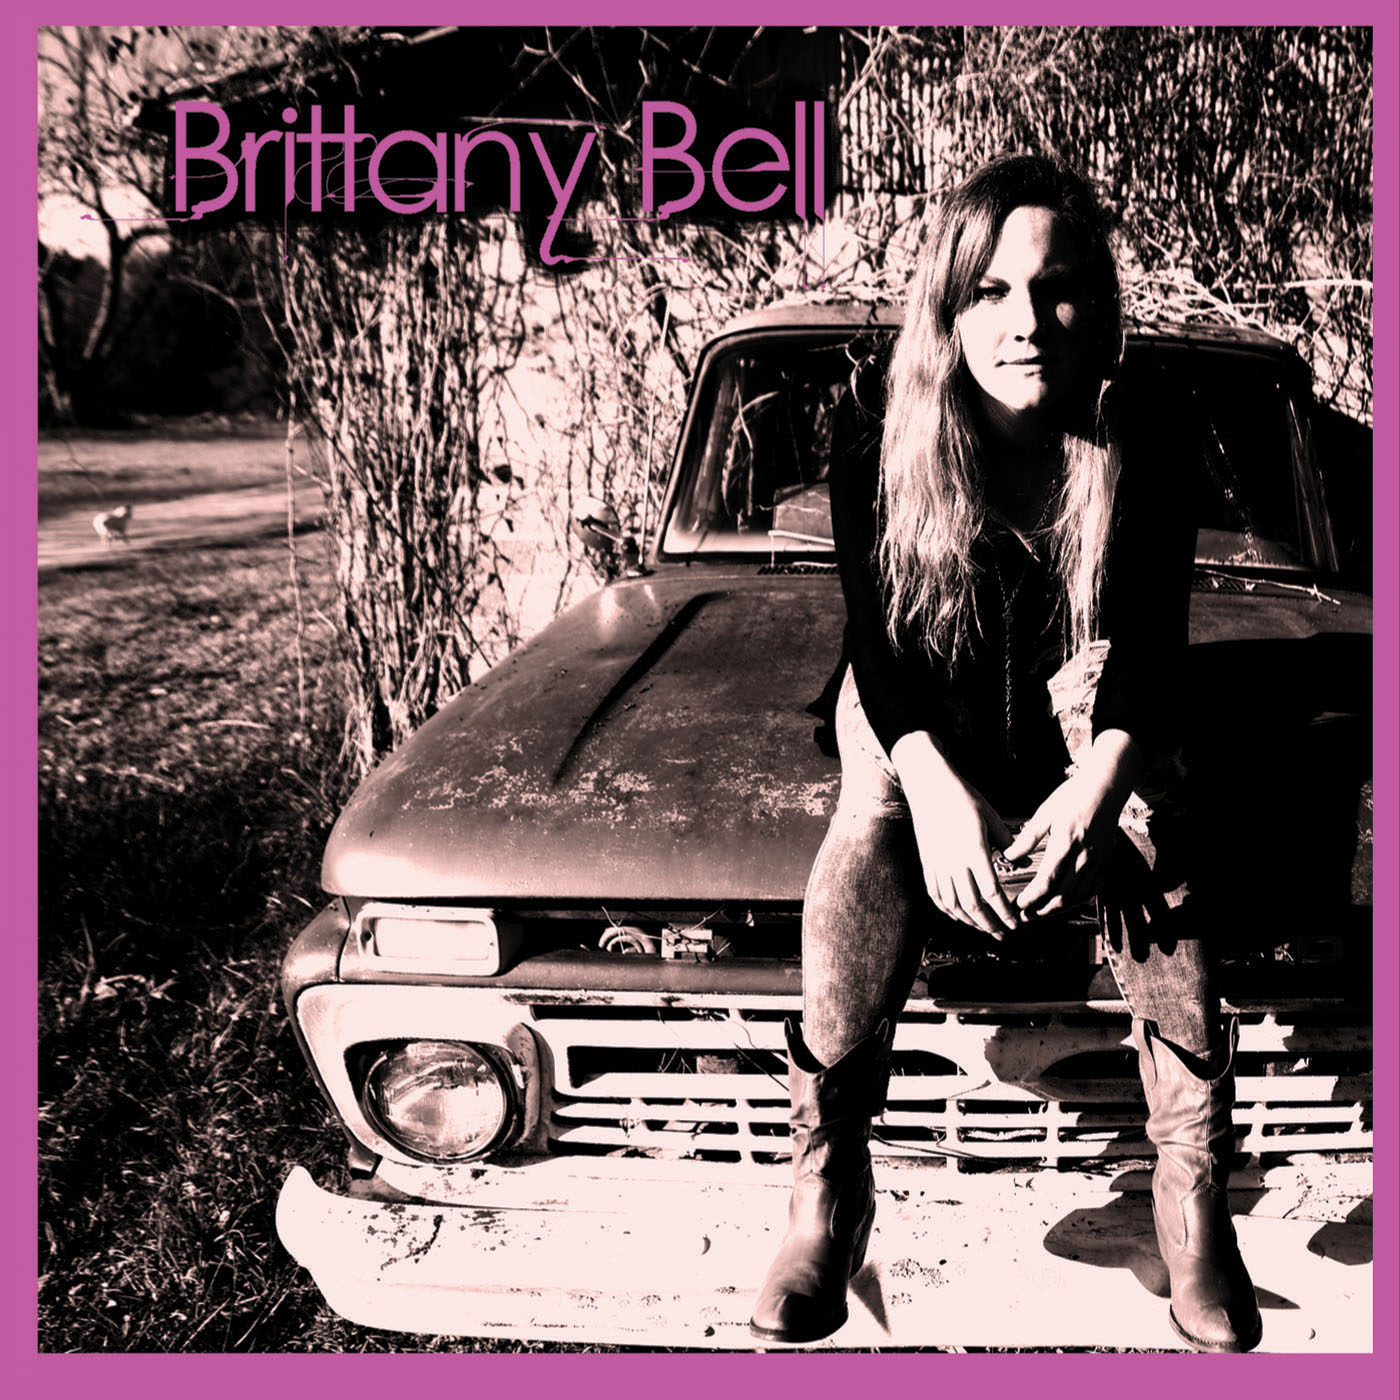 brittany-bell-front-cover.jpg